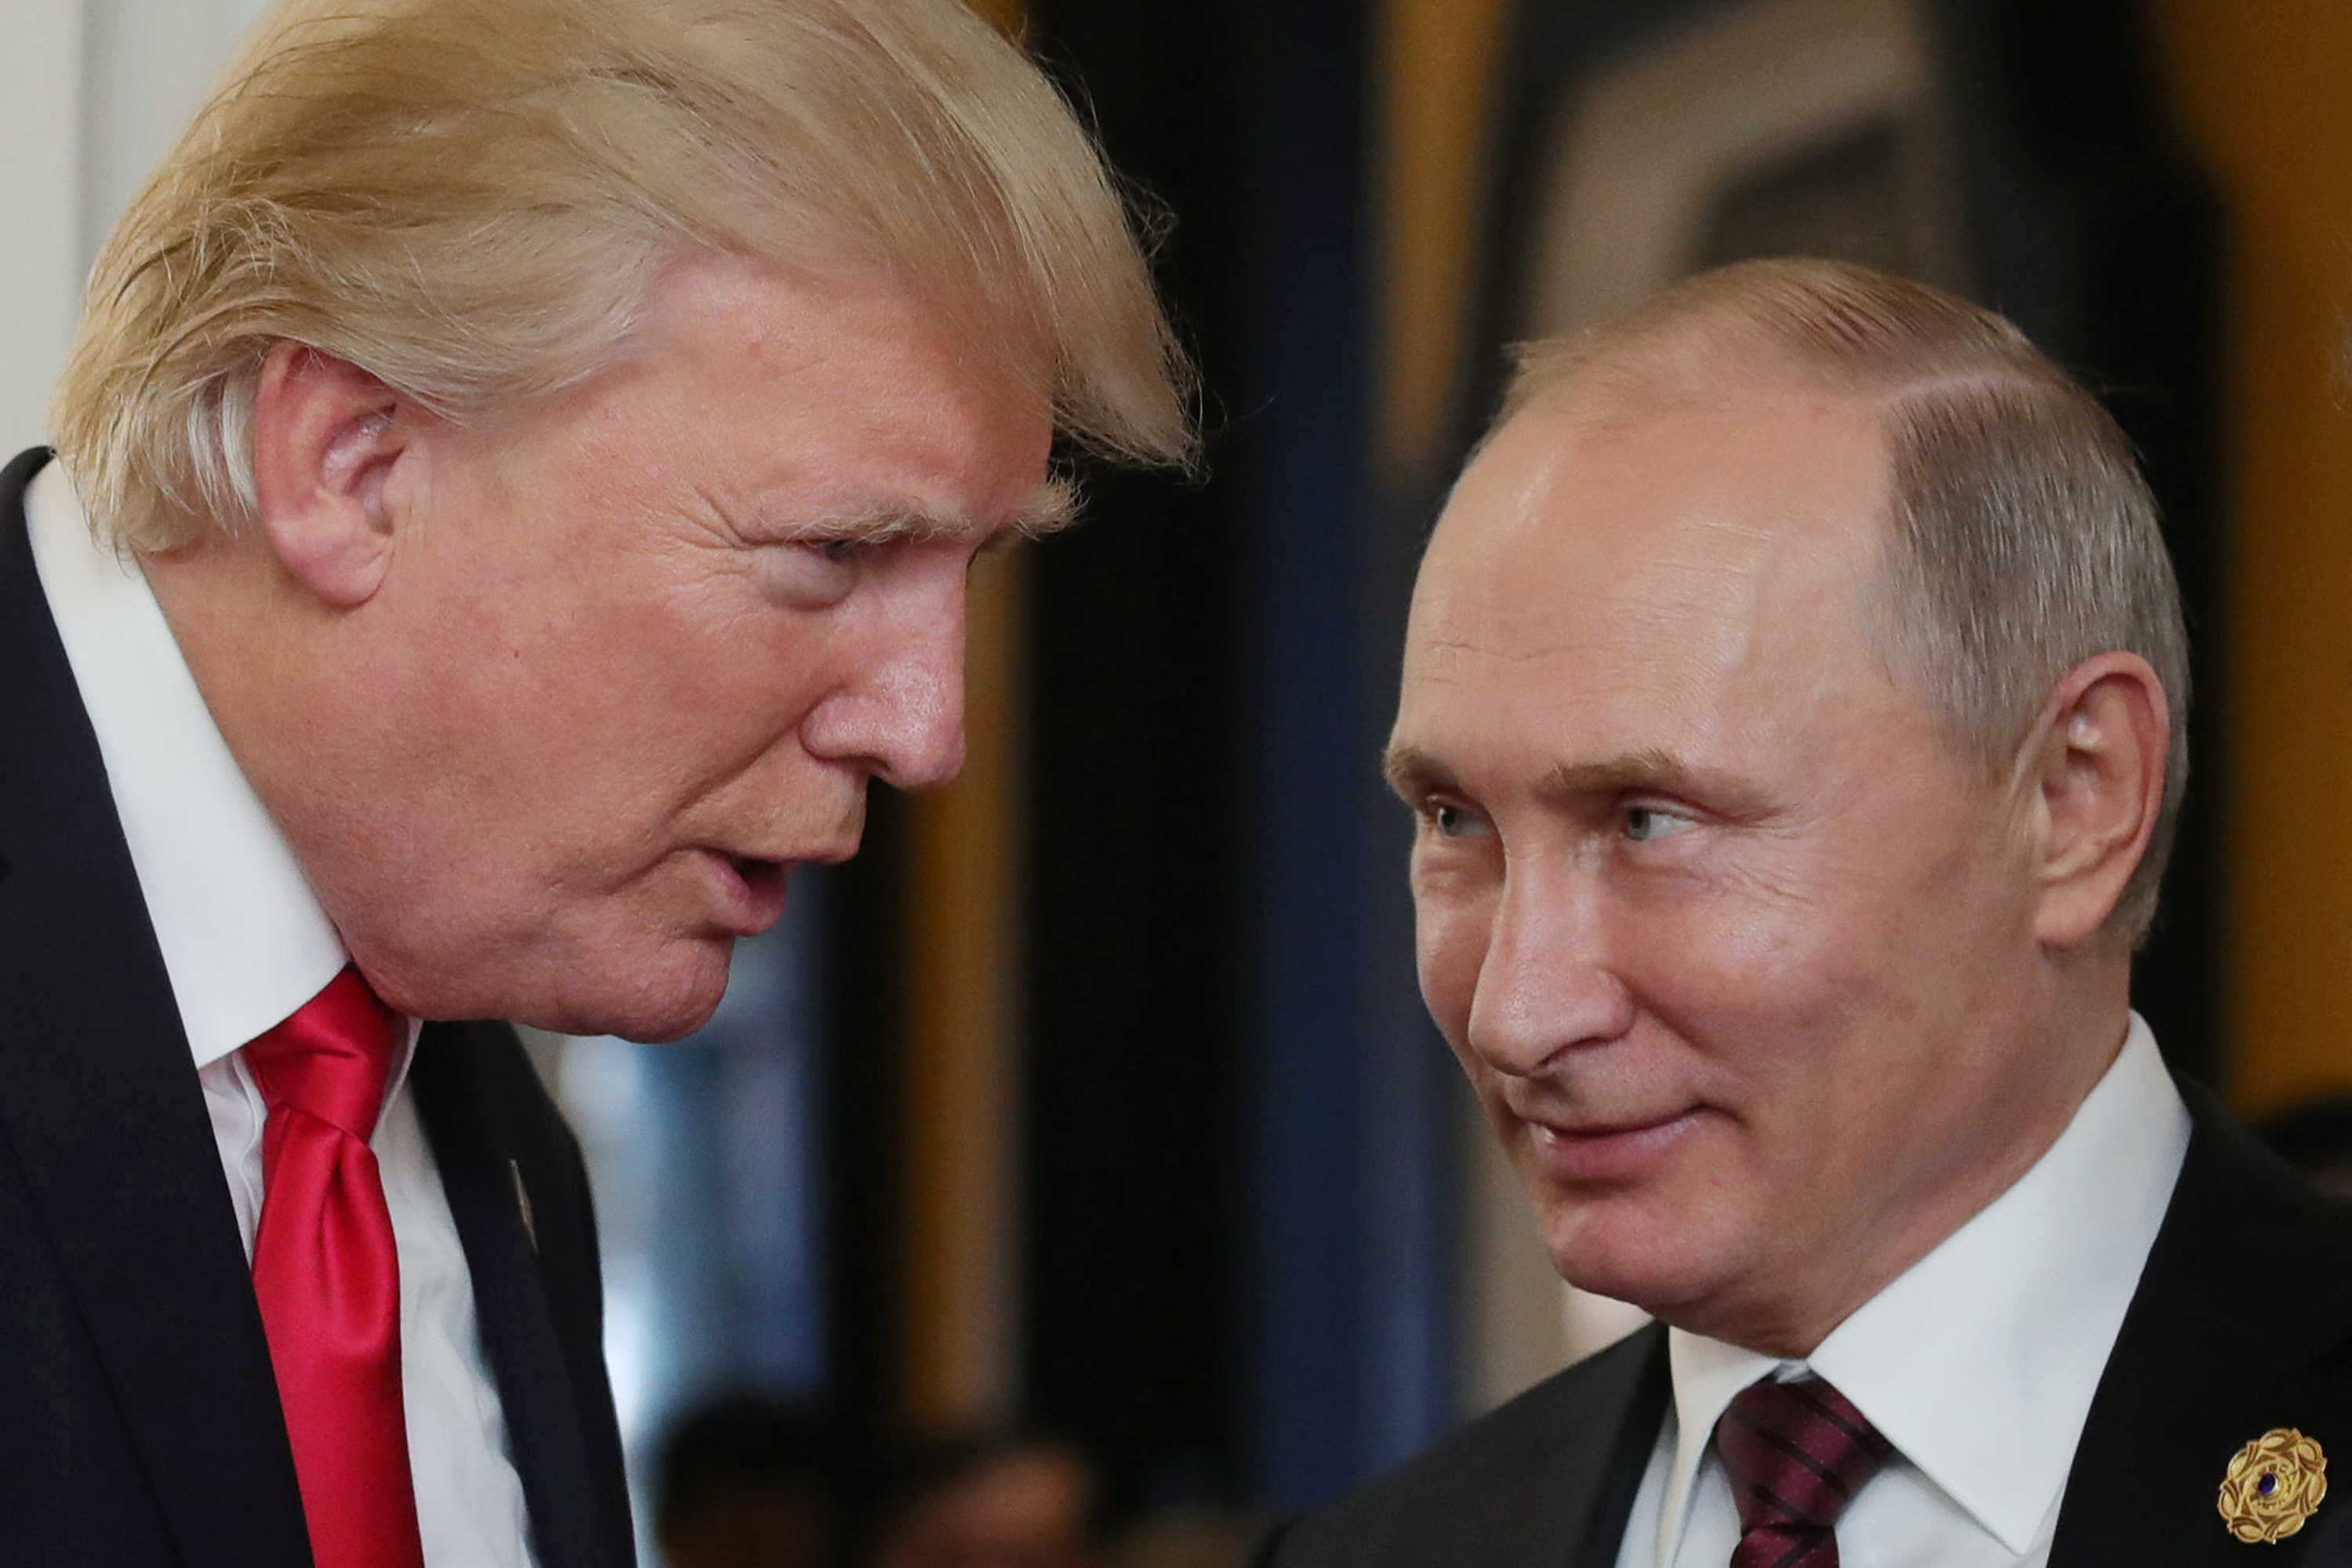 U.S. President Donald Trump chats with Russia's President Vladimir Putin as they attend the APEC Economic Leaders' Meeting, part of the Asia-Pacific Economic Cooperation (APEC) leaders' summit in the central Vietnamese city of Danang on November 11, 2017.